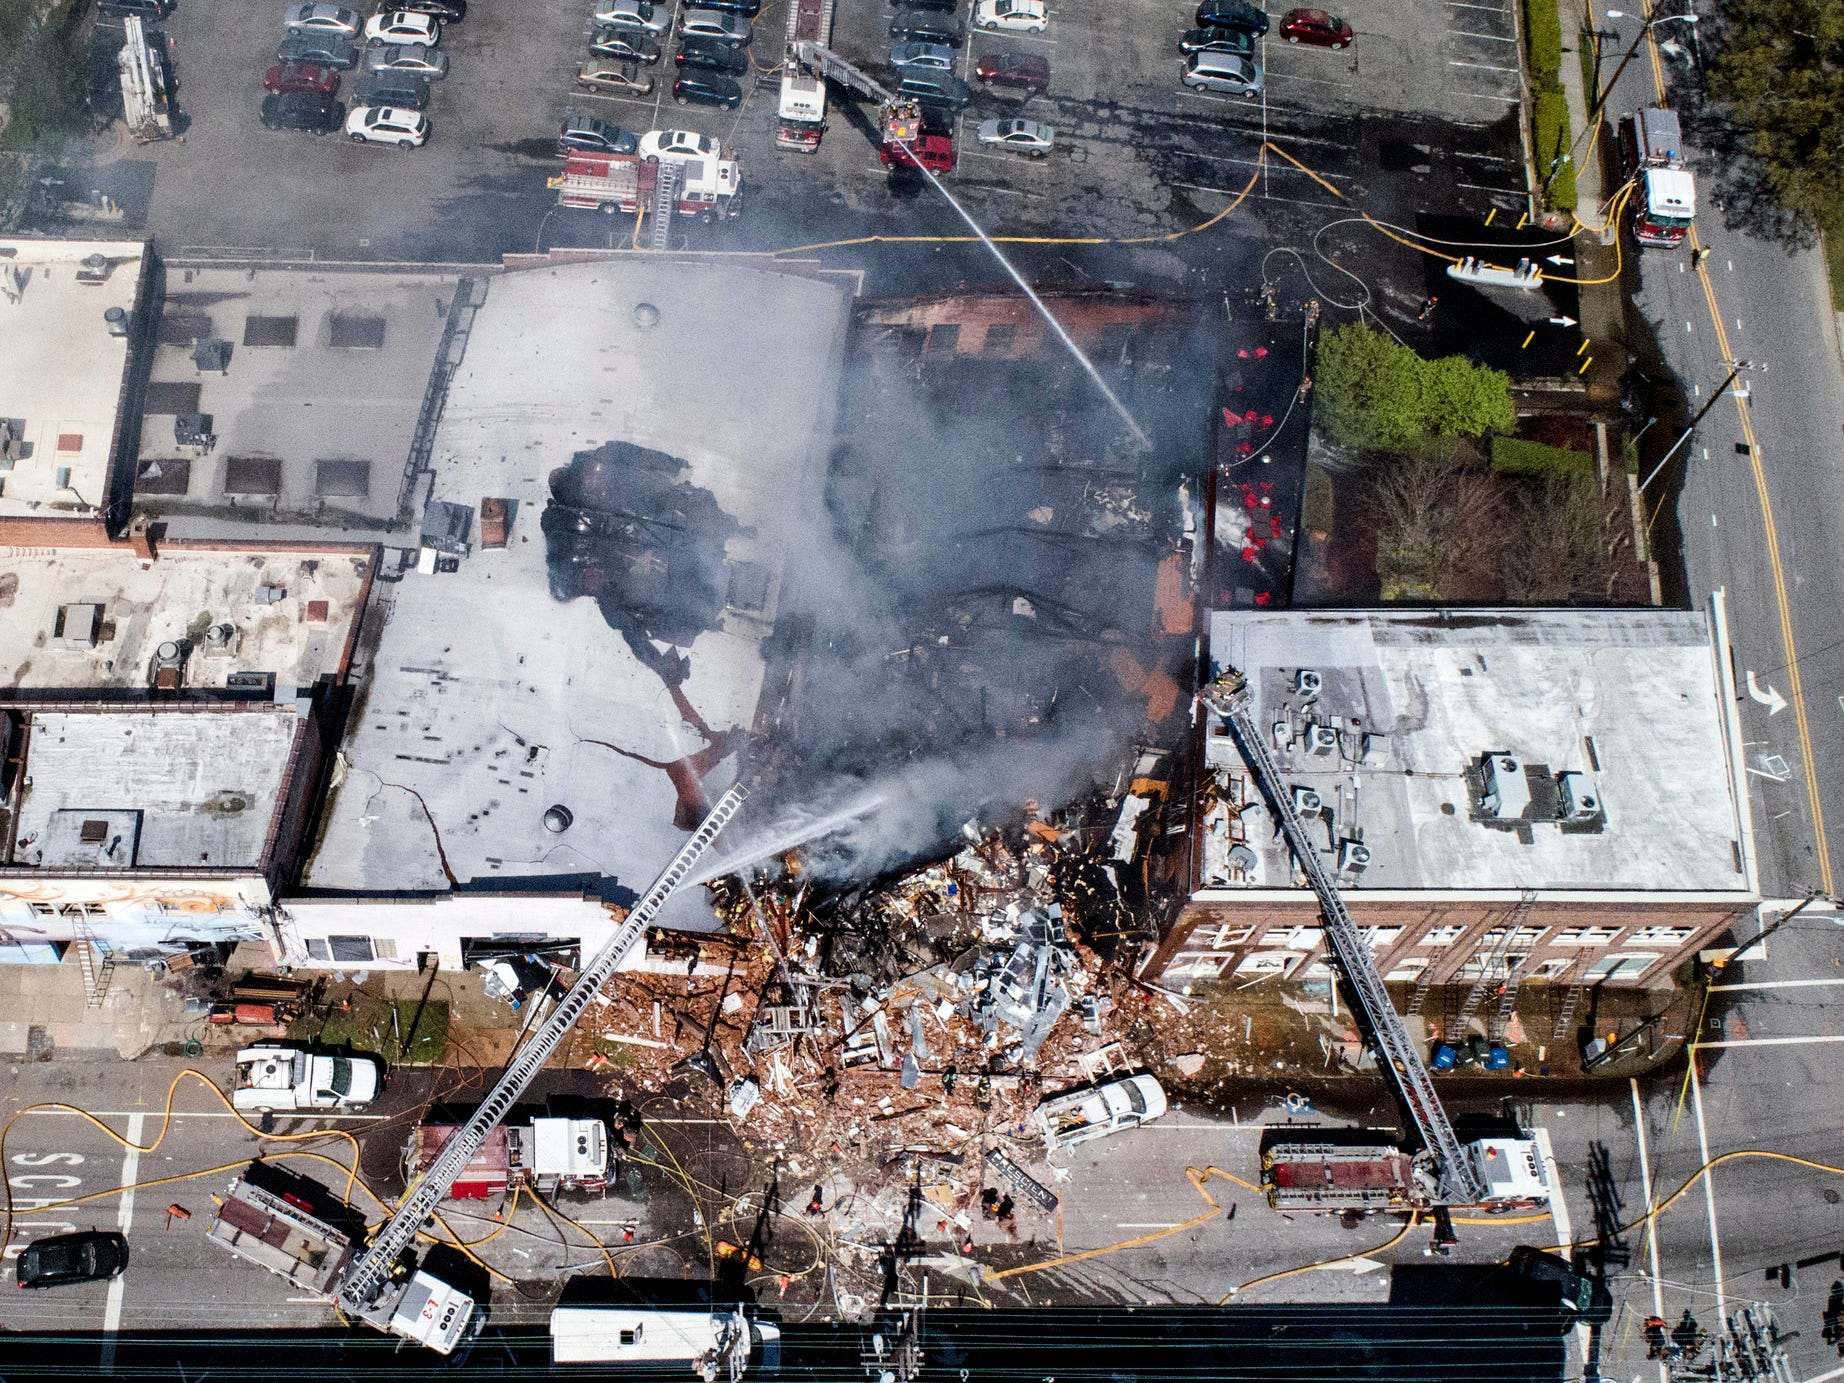 In this aerial photo, firefighters battle a fire at the scene of an explosion in Durham, N.C. Wednesday, April 10, 2019.